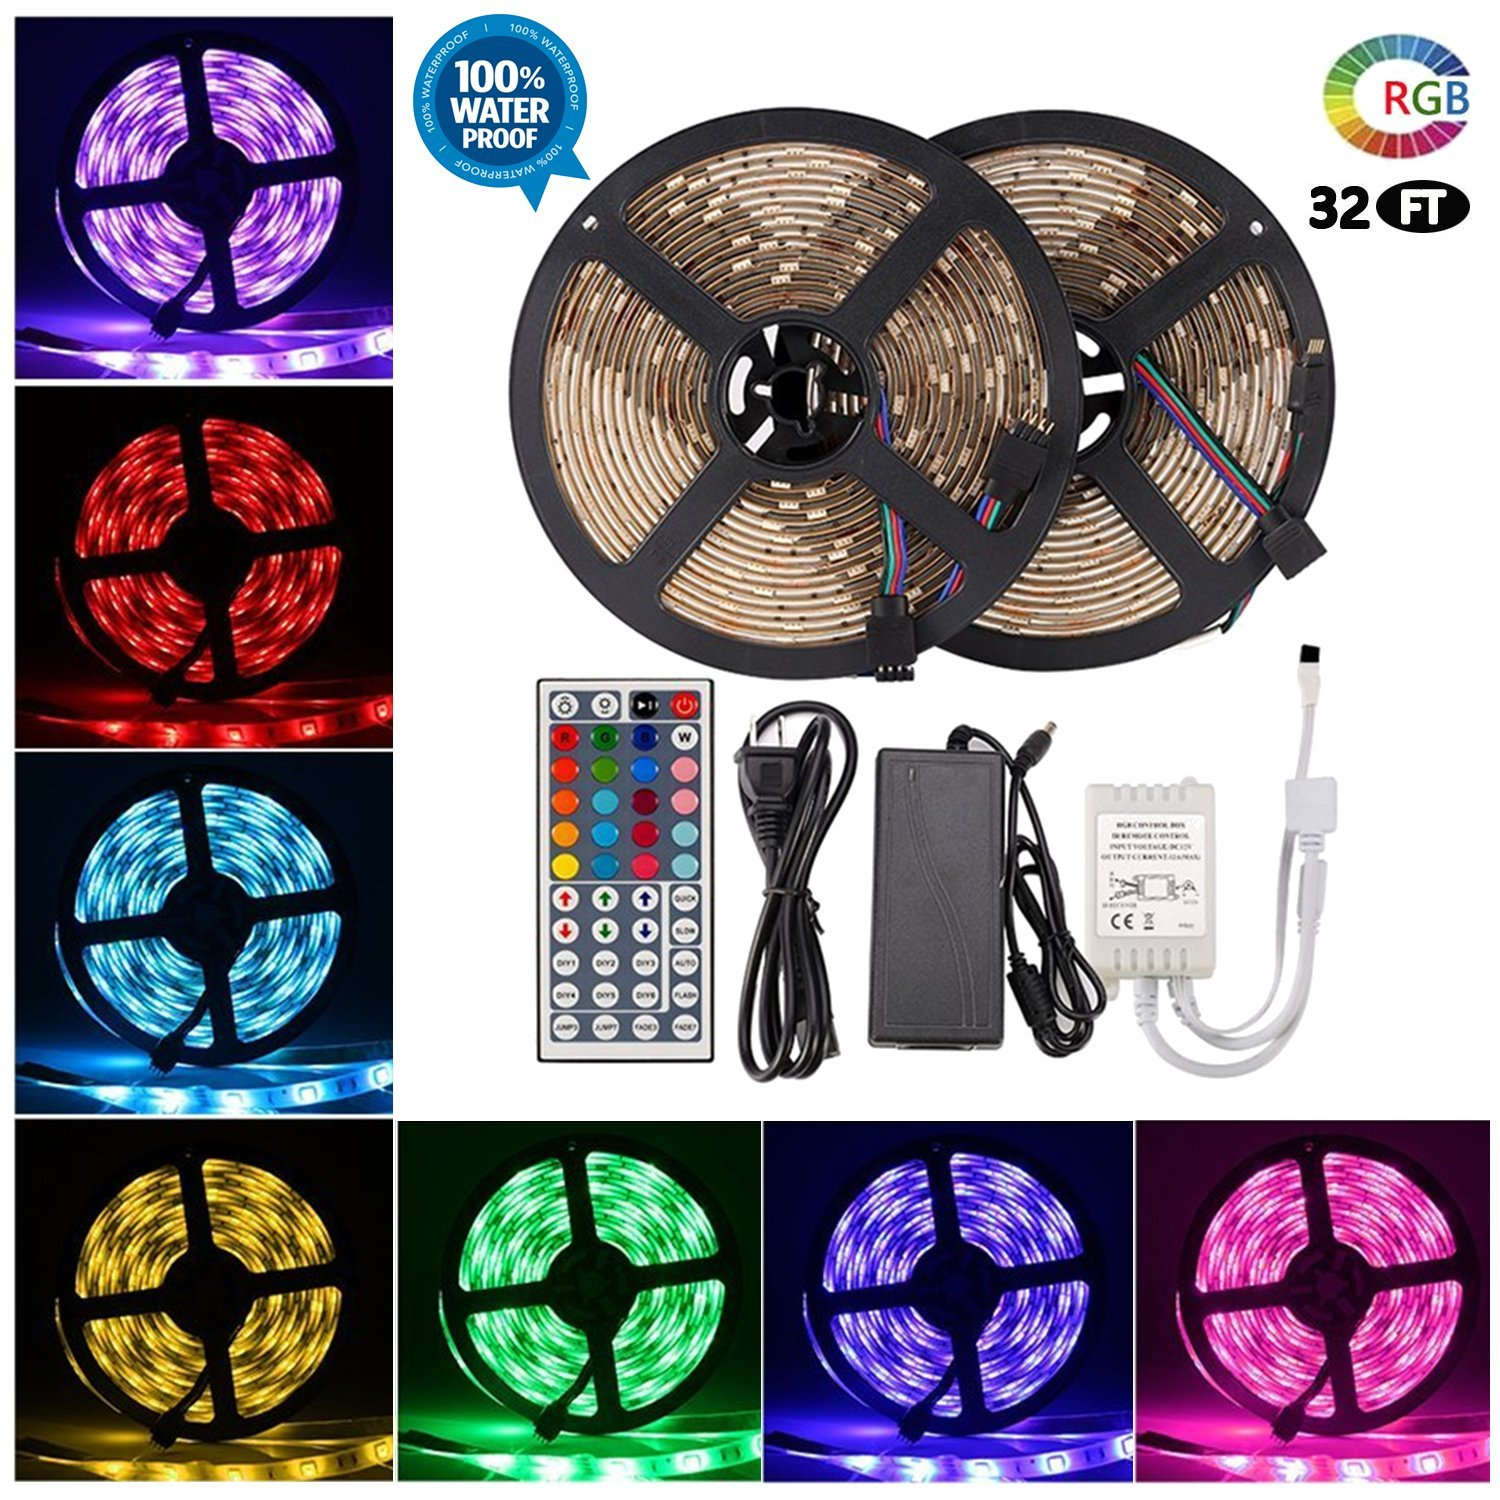 LED Strip Lights - Waterproof Led Tape Lights - Dimmable Multicolored LED Lights Kit 32.8ft/10m, 300LEDs, 5050RGB with 44Key Remote Controller and Power Adapter for Home, Kitchen, Cabinet Decoration by DOPTIKA (Image #1)